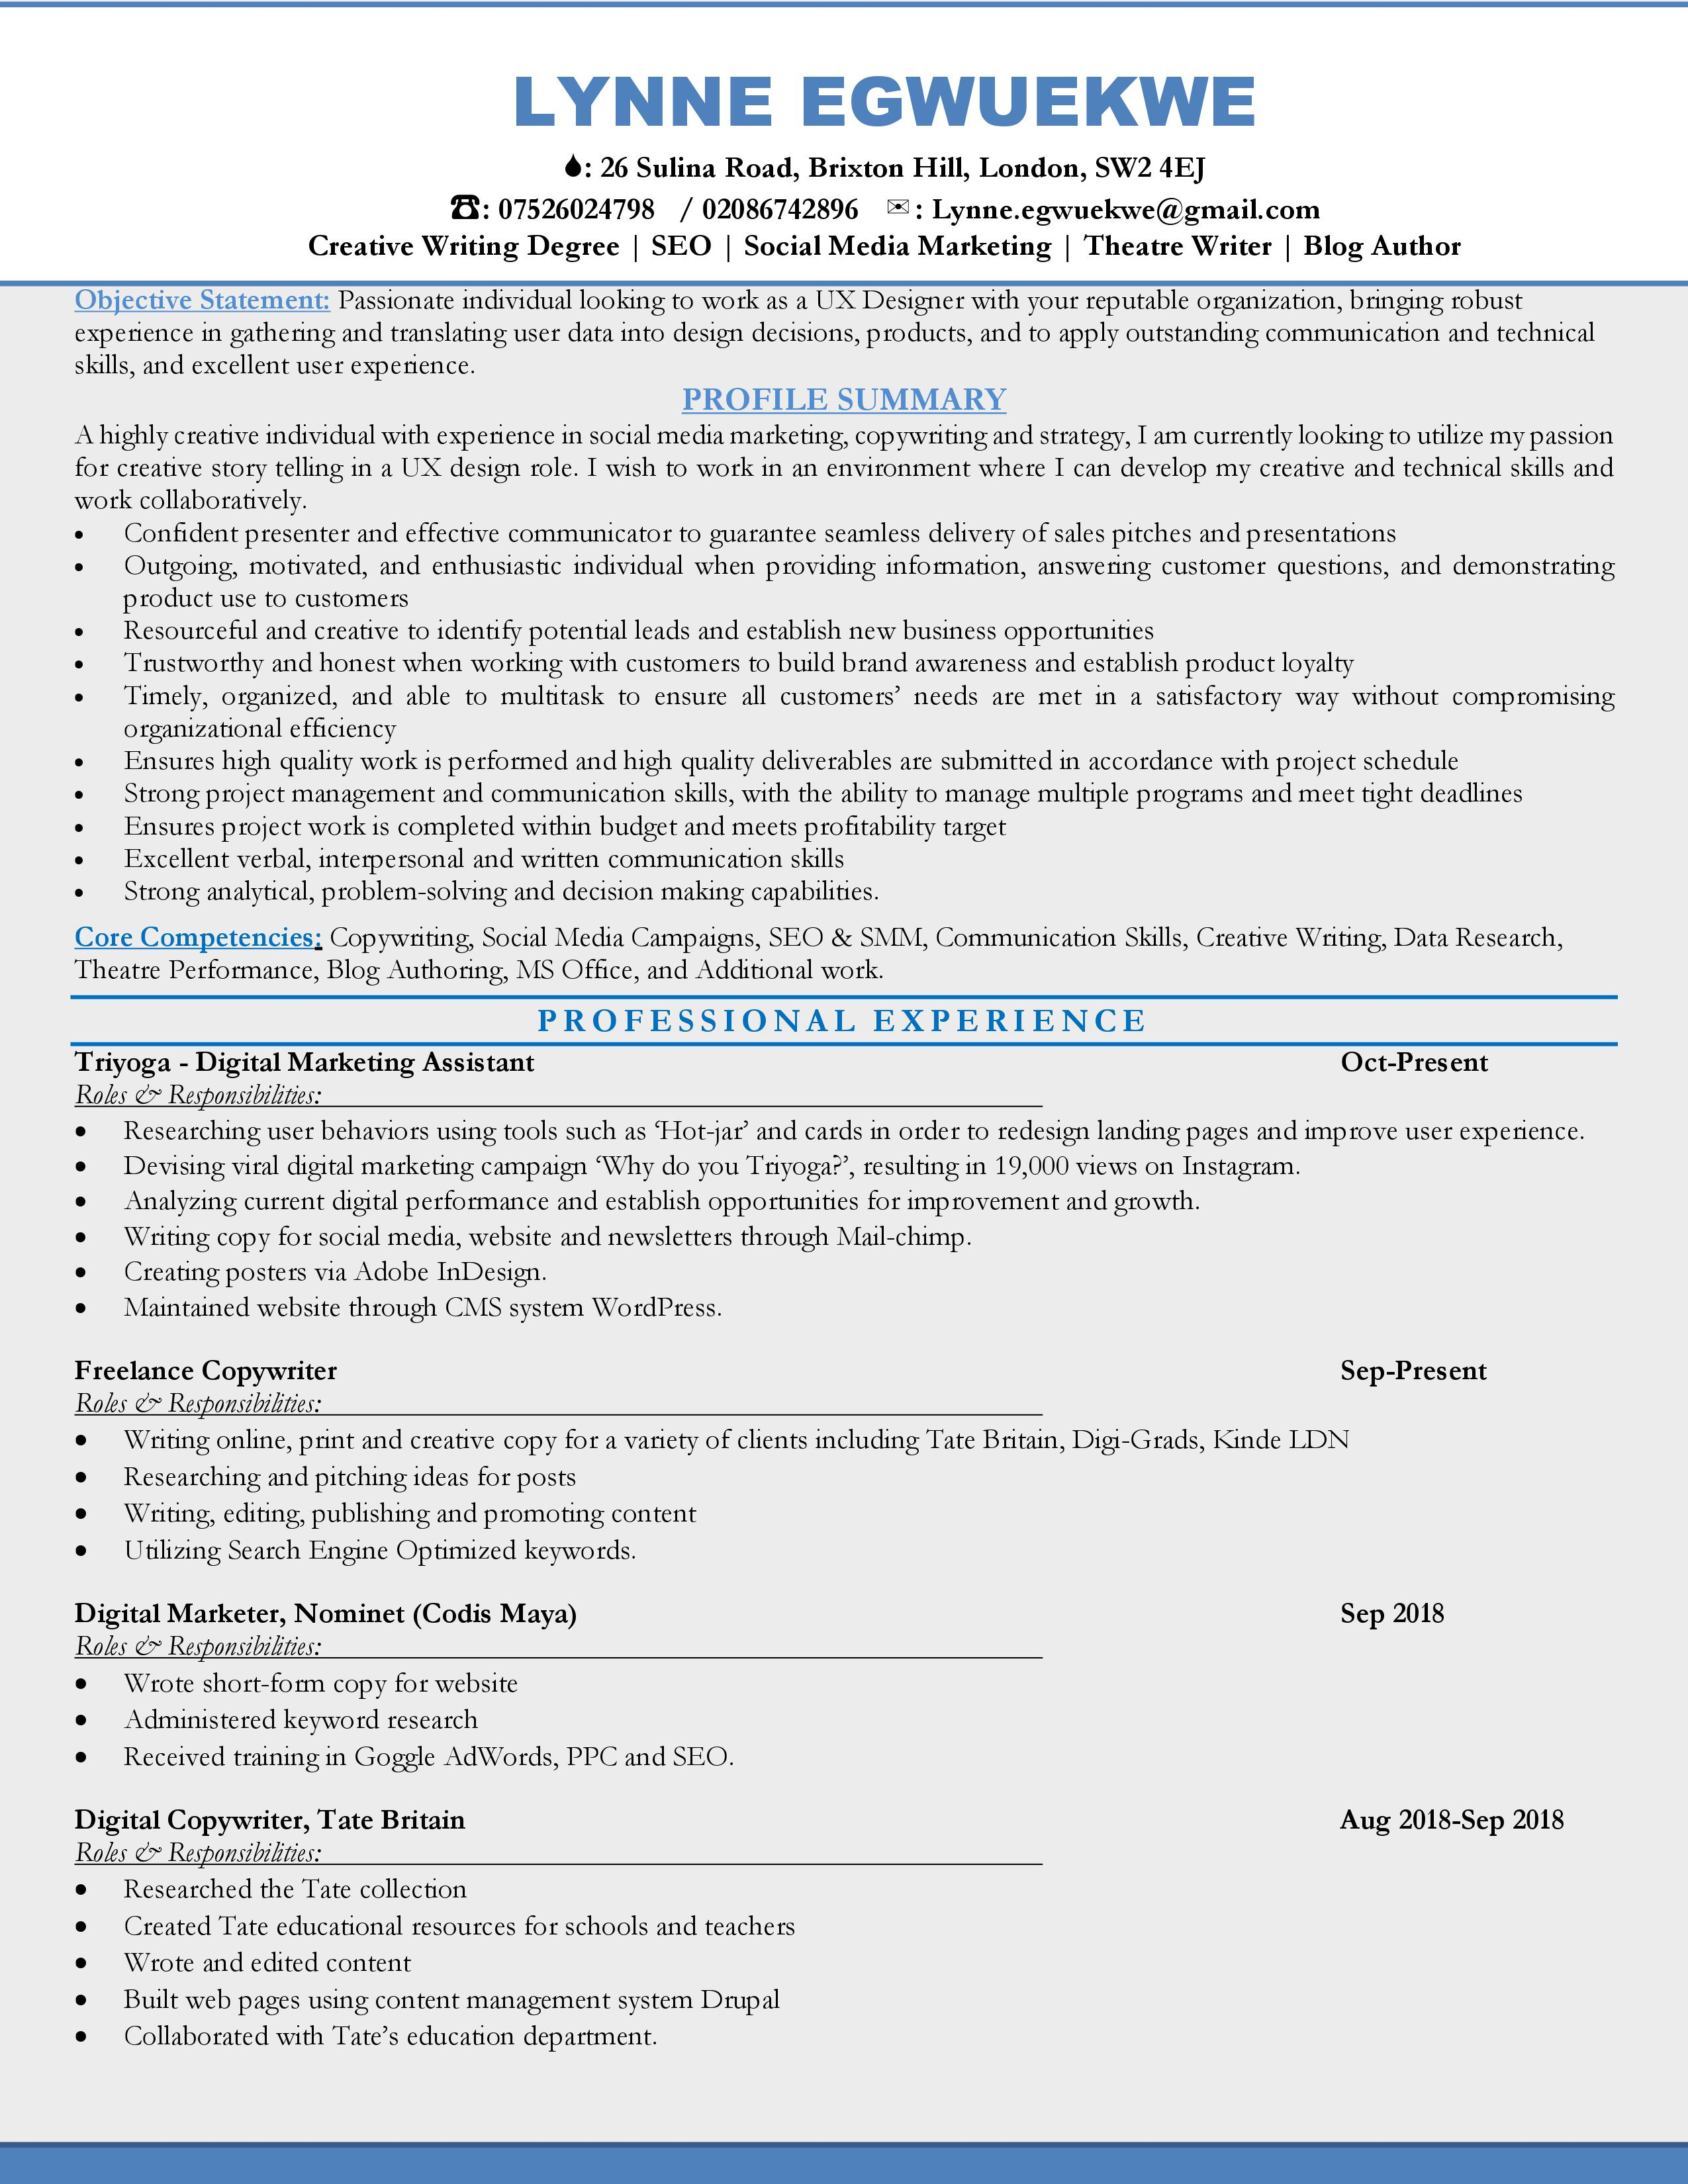 Edit Write Your Nursing Resumes CV And Cover Letter